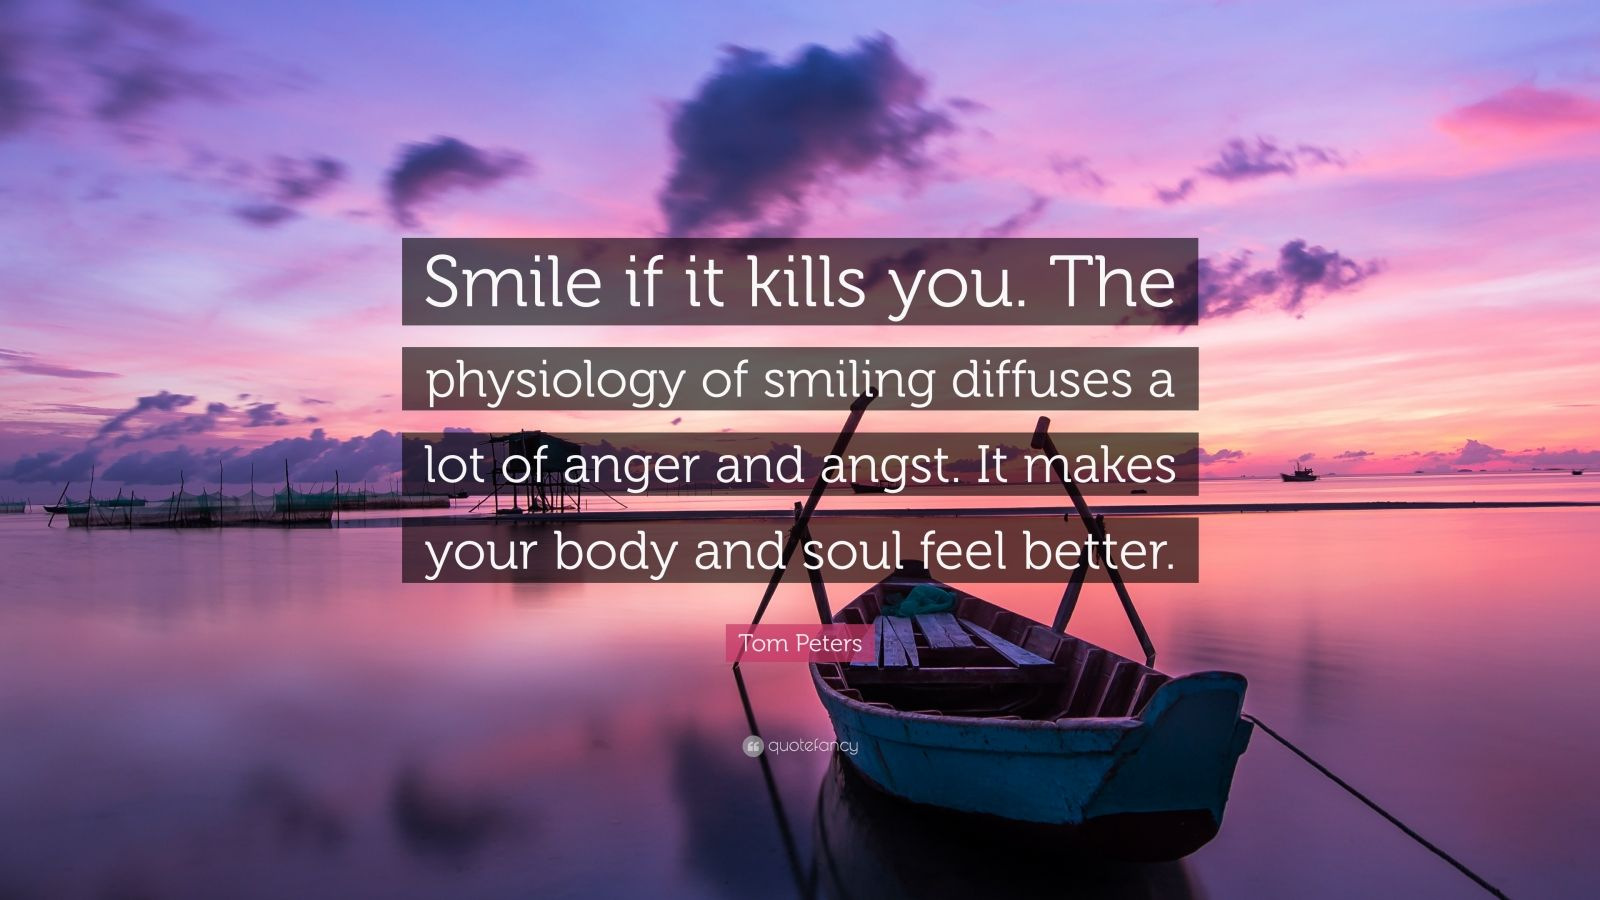 """Tom Peters Quote: """"Smile if it kills you. The physiology of smiling diffuses a lot of anger and angst. It makes your body and soul feel better."""""""